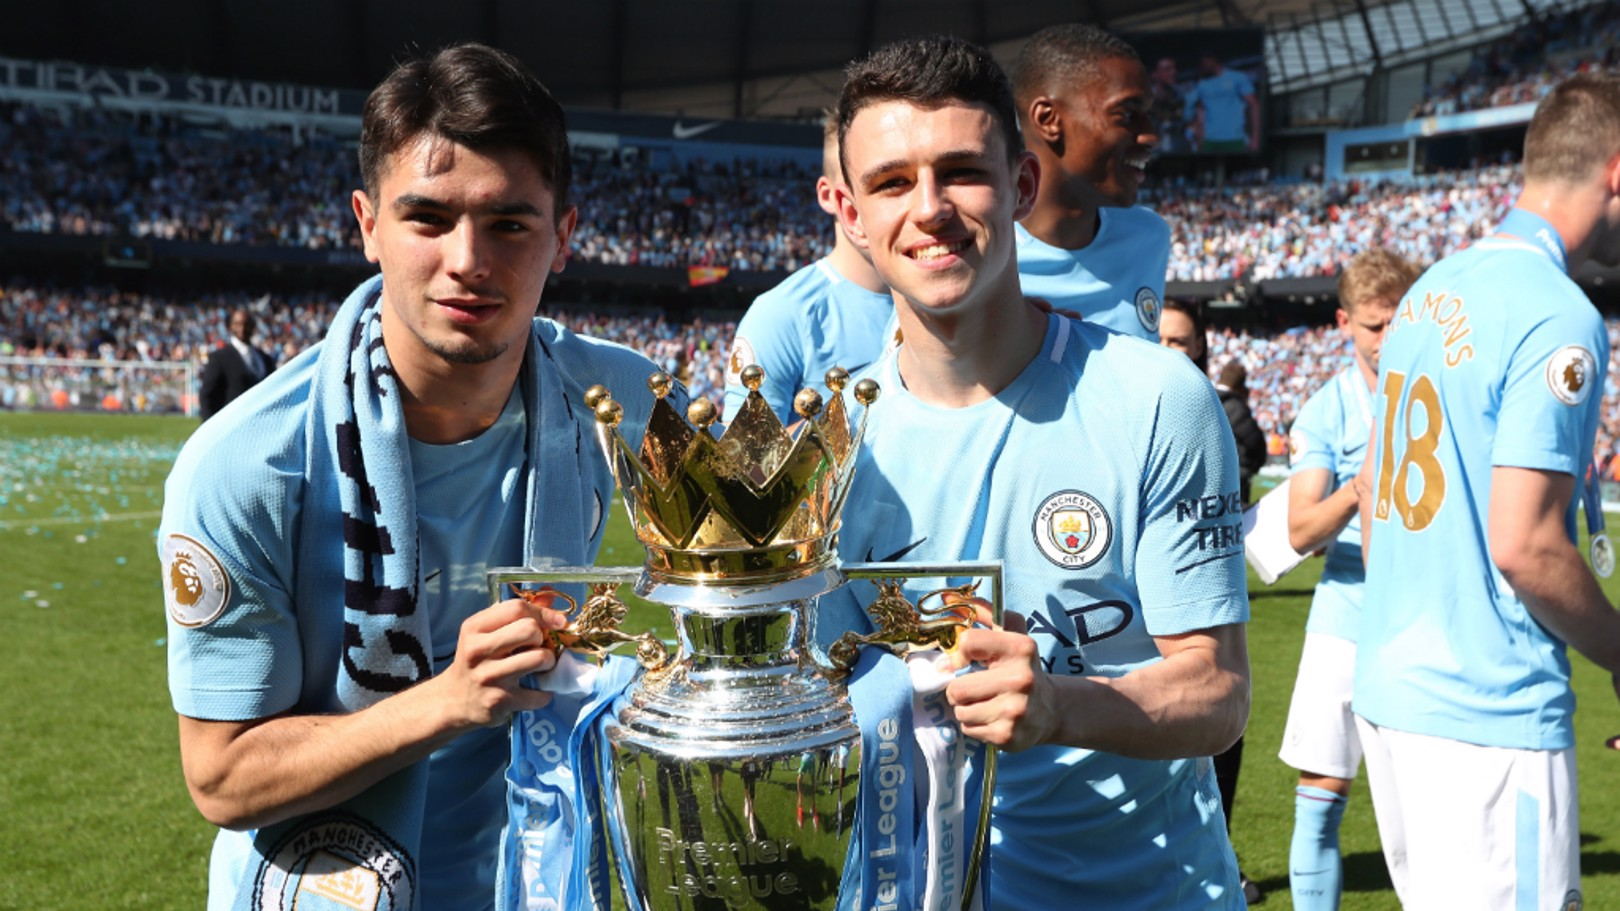 YOUNG STARS: Brahim Diaz and Phil Foden celebrate their first Premier League medals...